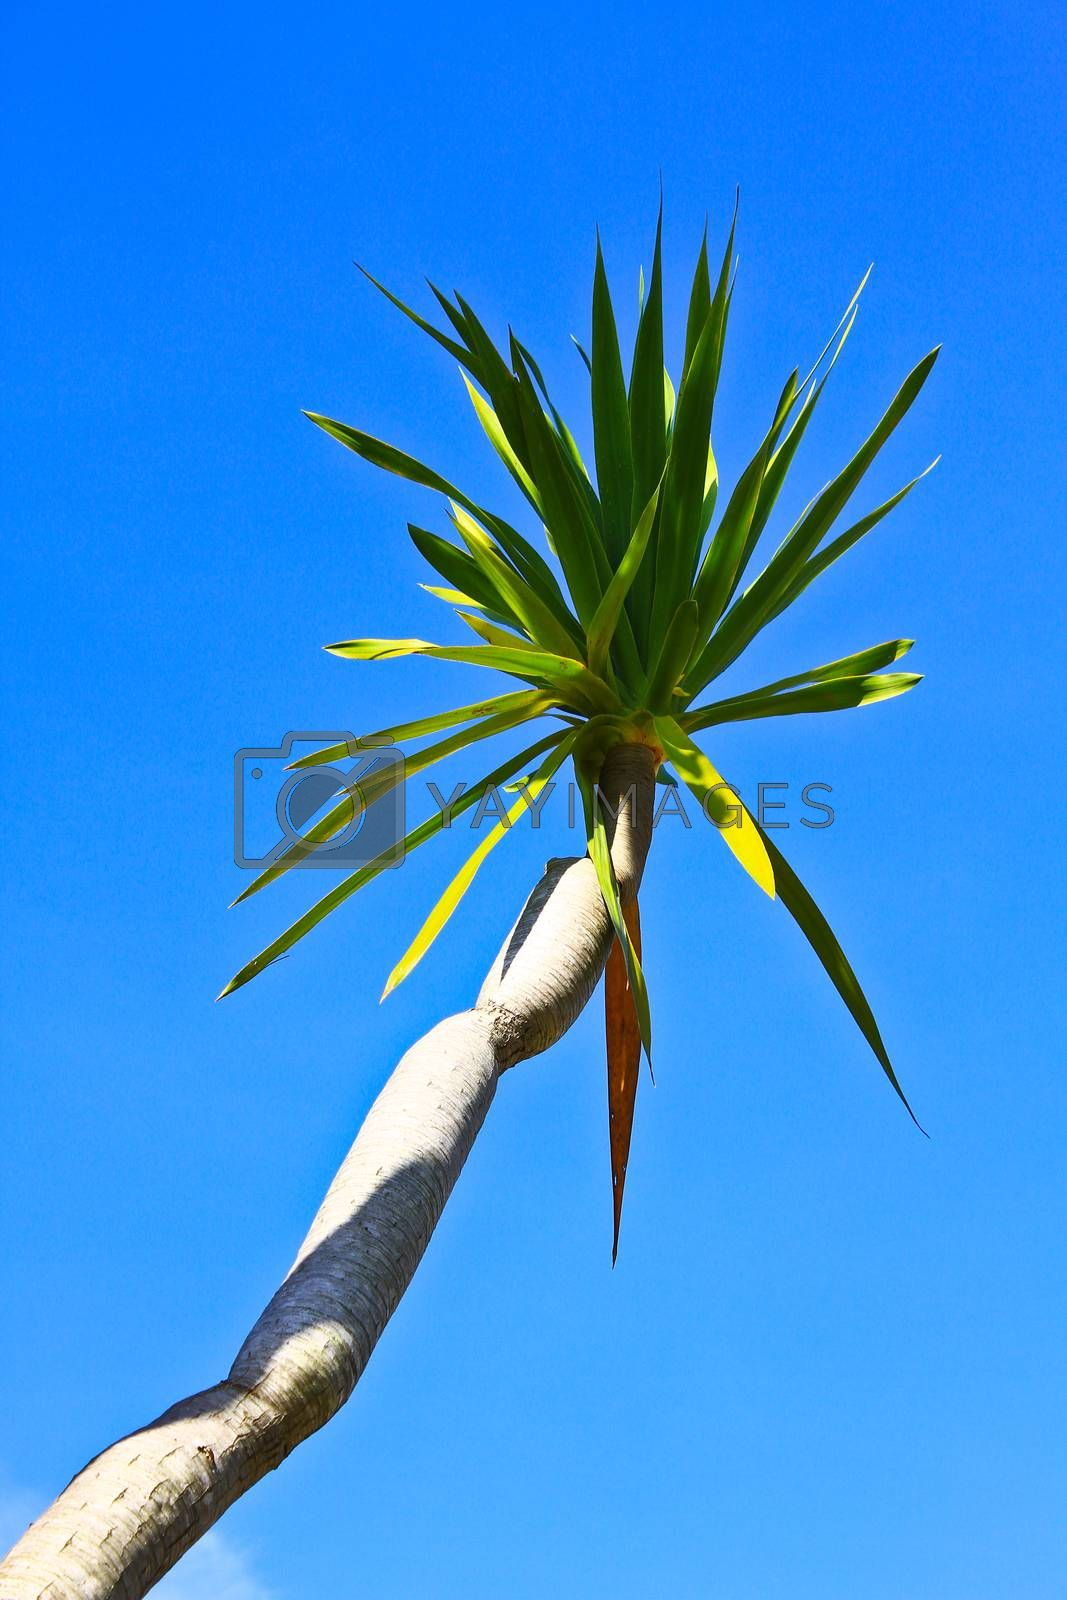 Royalty free image of Dracaena tree by forest71